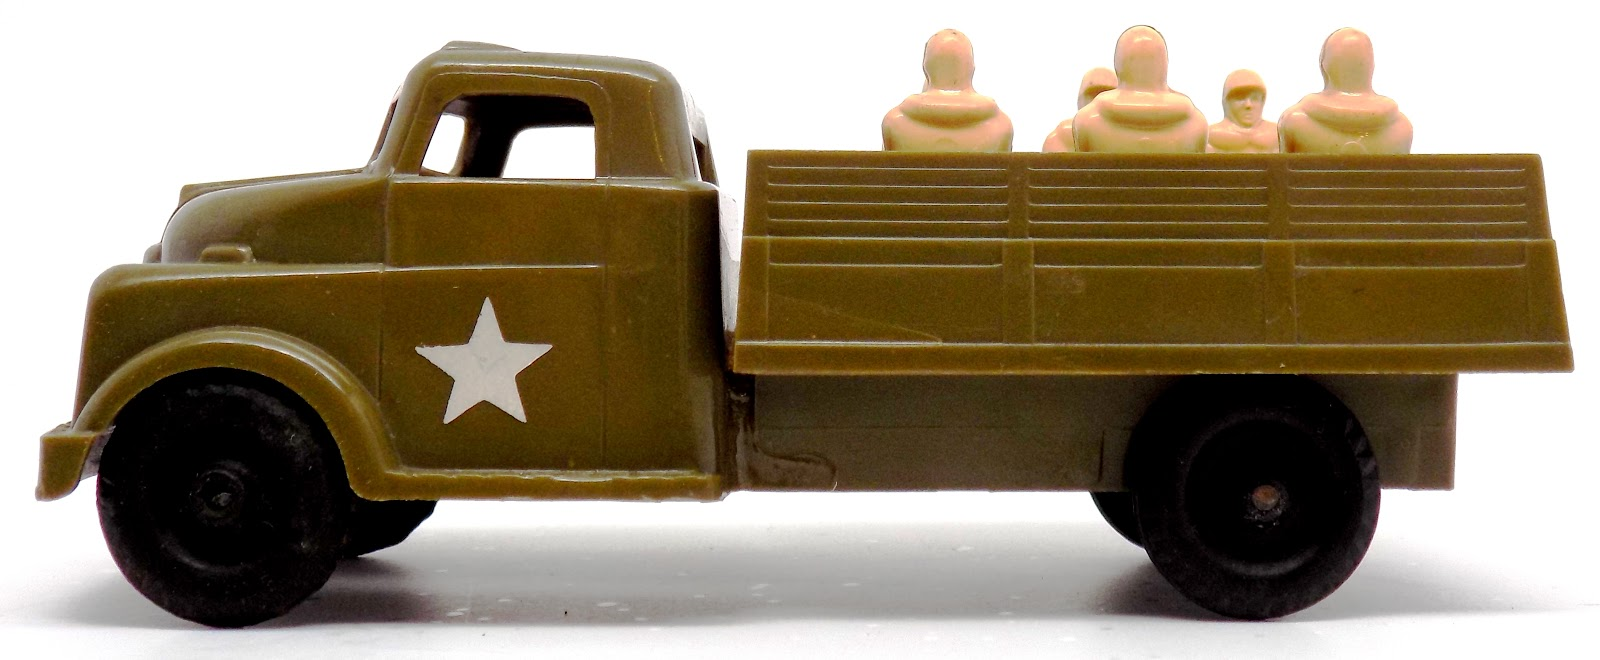 Toys and Stuff: Pyro Army Soldier (aka Troop) Transport Truck ...